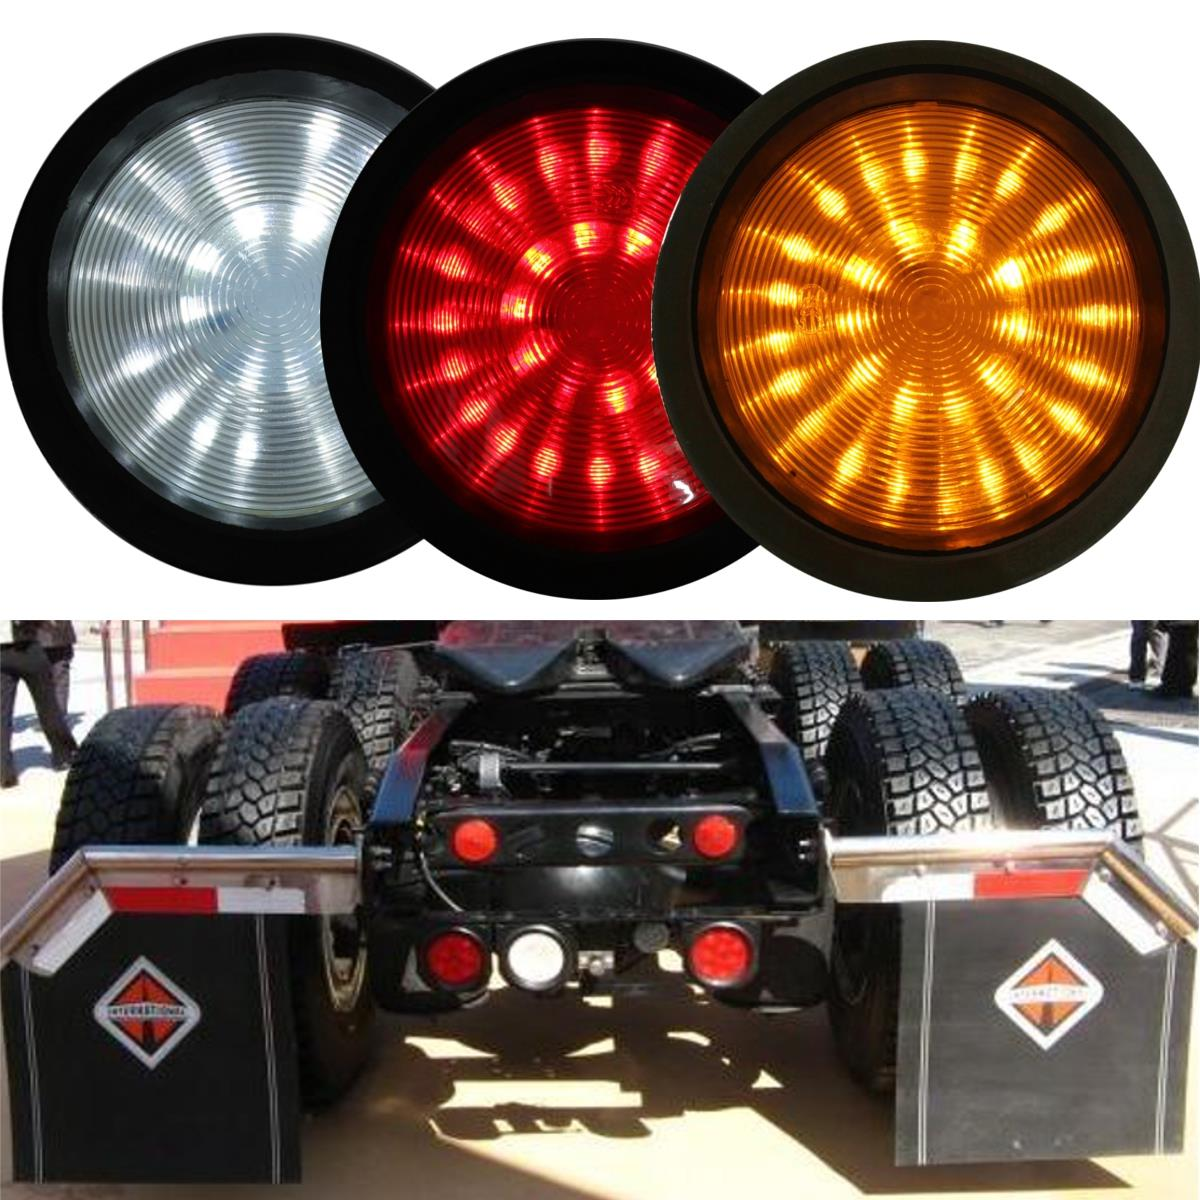 Audew 1x Circular UTE Truck Trailer Lorry Caravan Stop Rear Tail Indicator Light Lamp 30 led trailer truck stop rear tail light indicator lamp caravan lorry car boat van w bracket